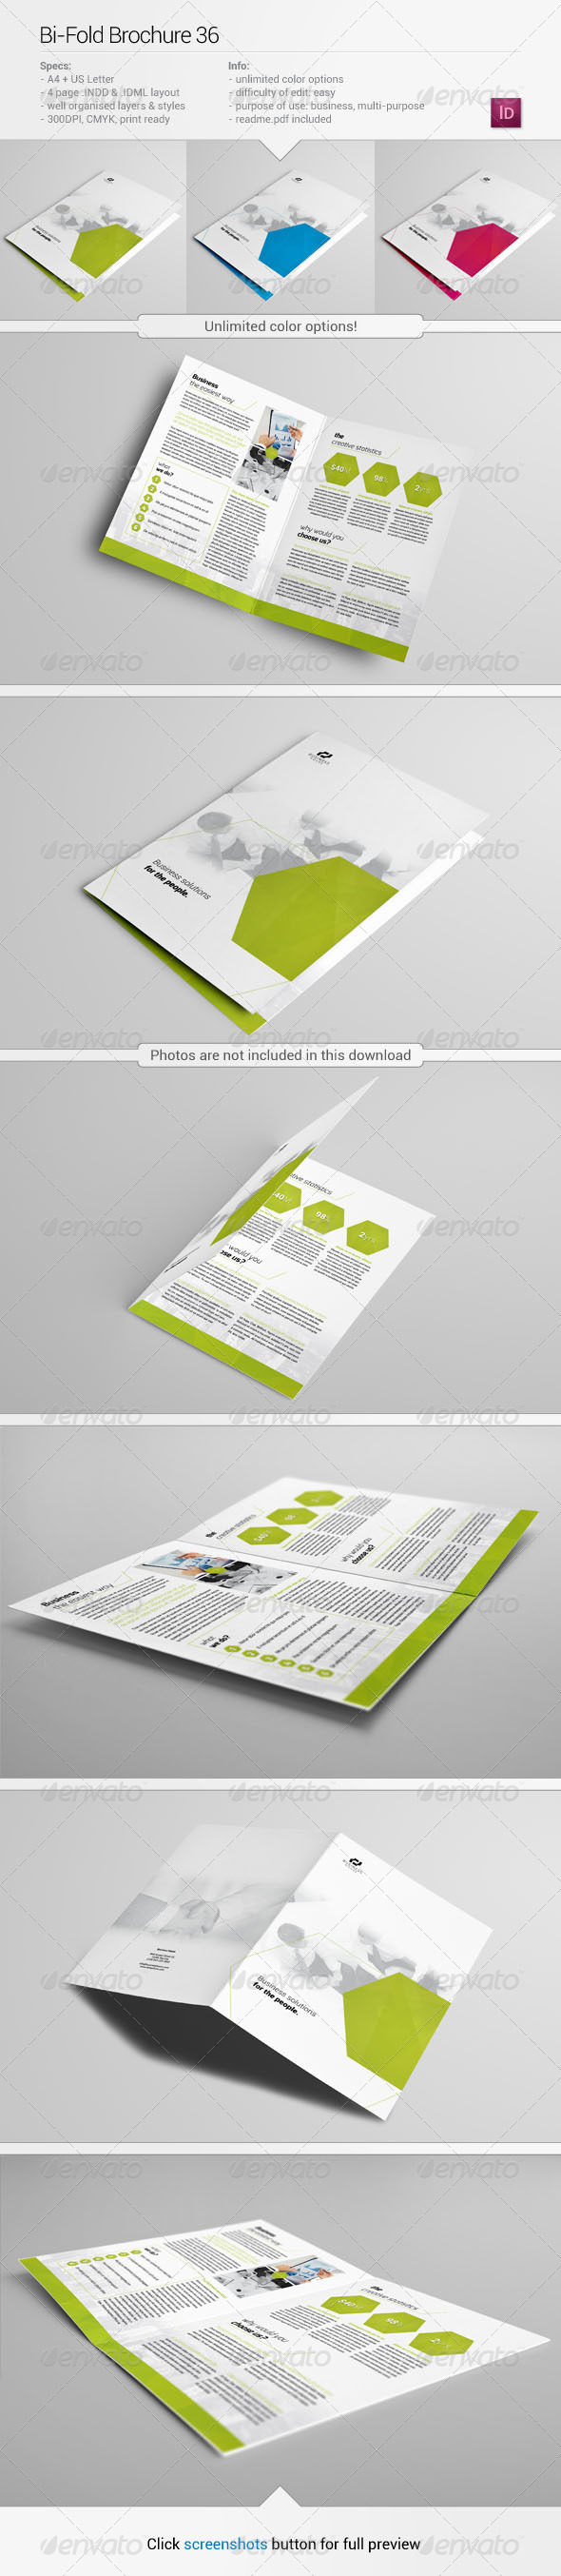 GraphicRiver Bi-Fold Brochure 36 6059828